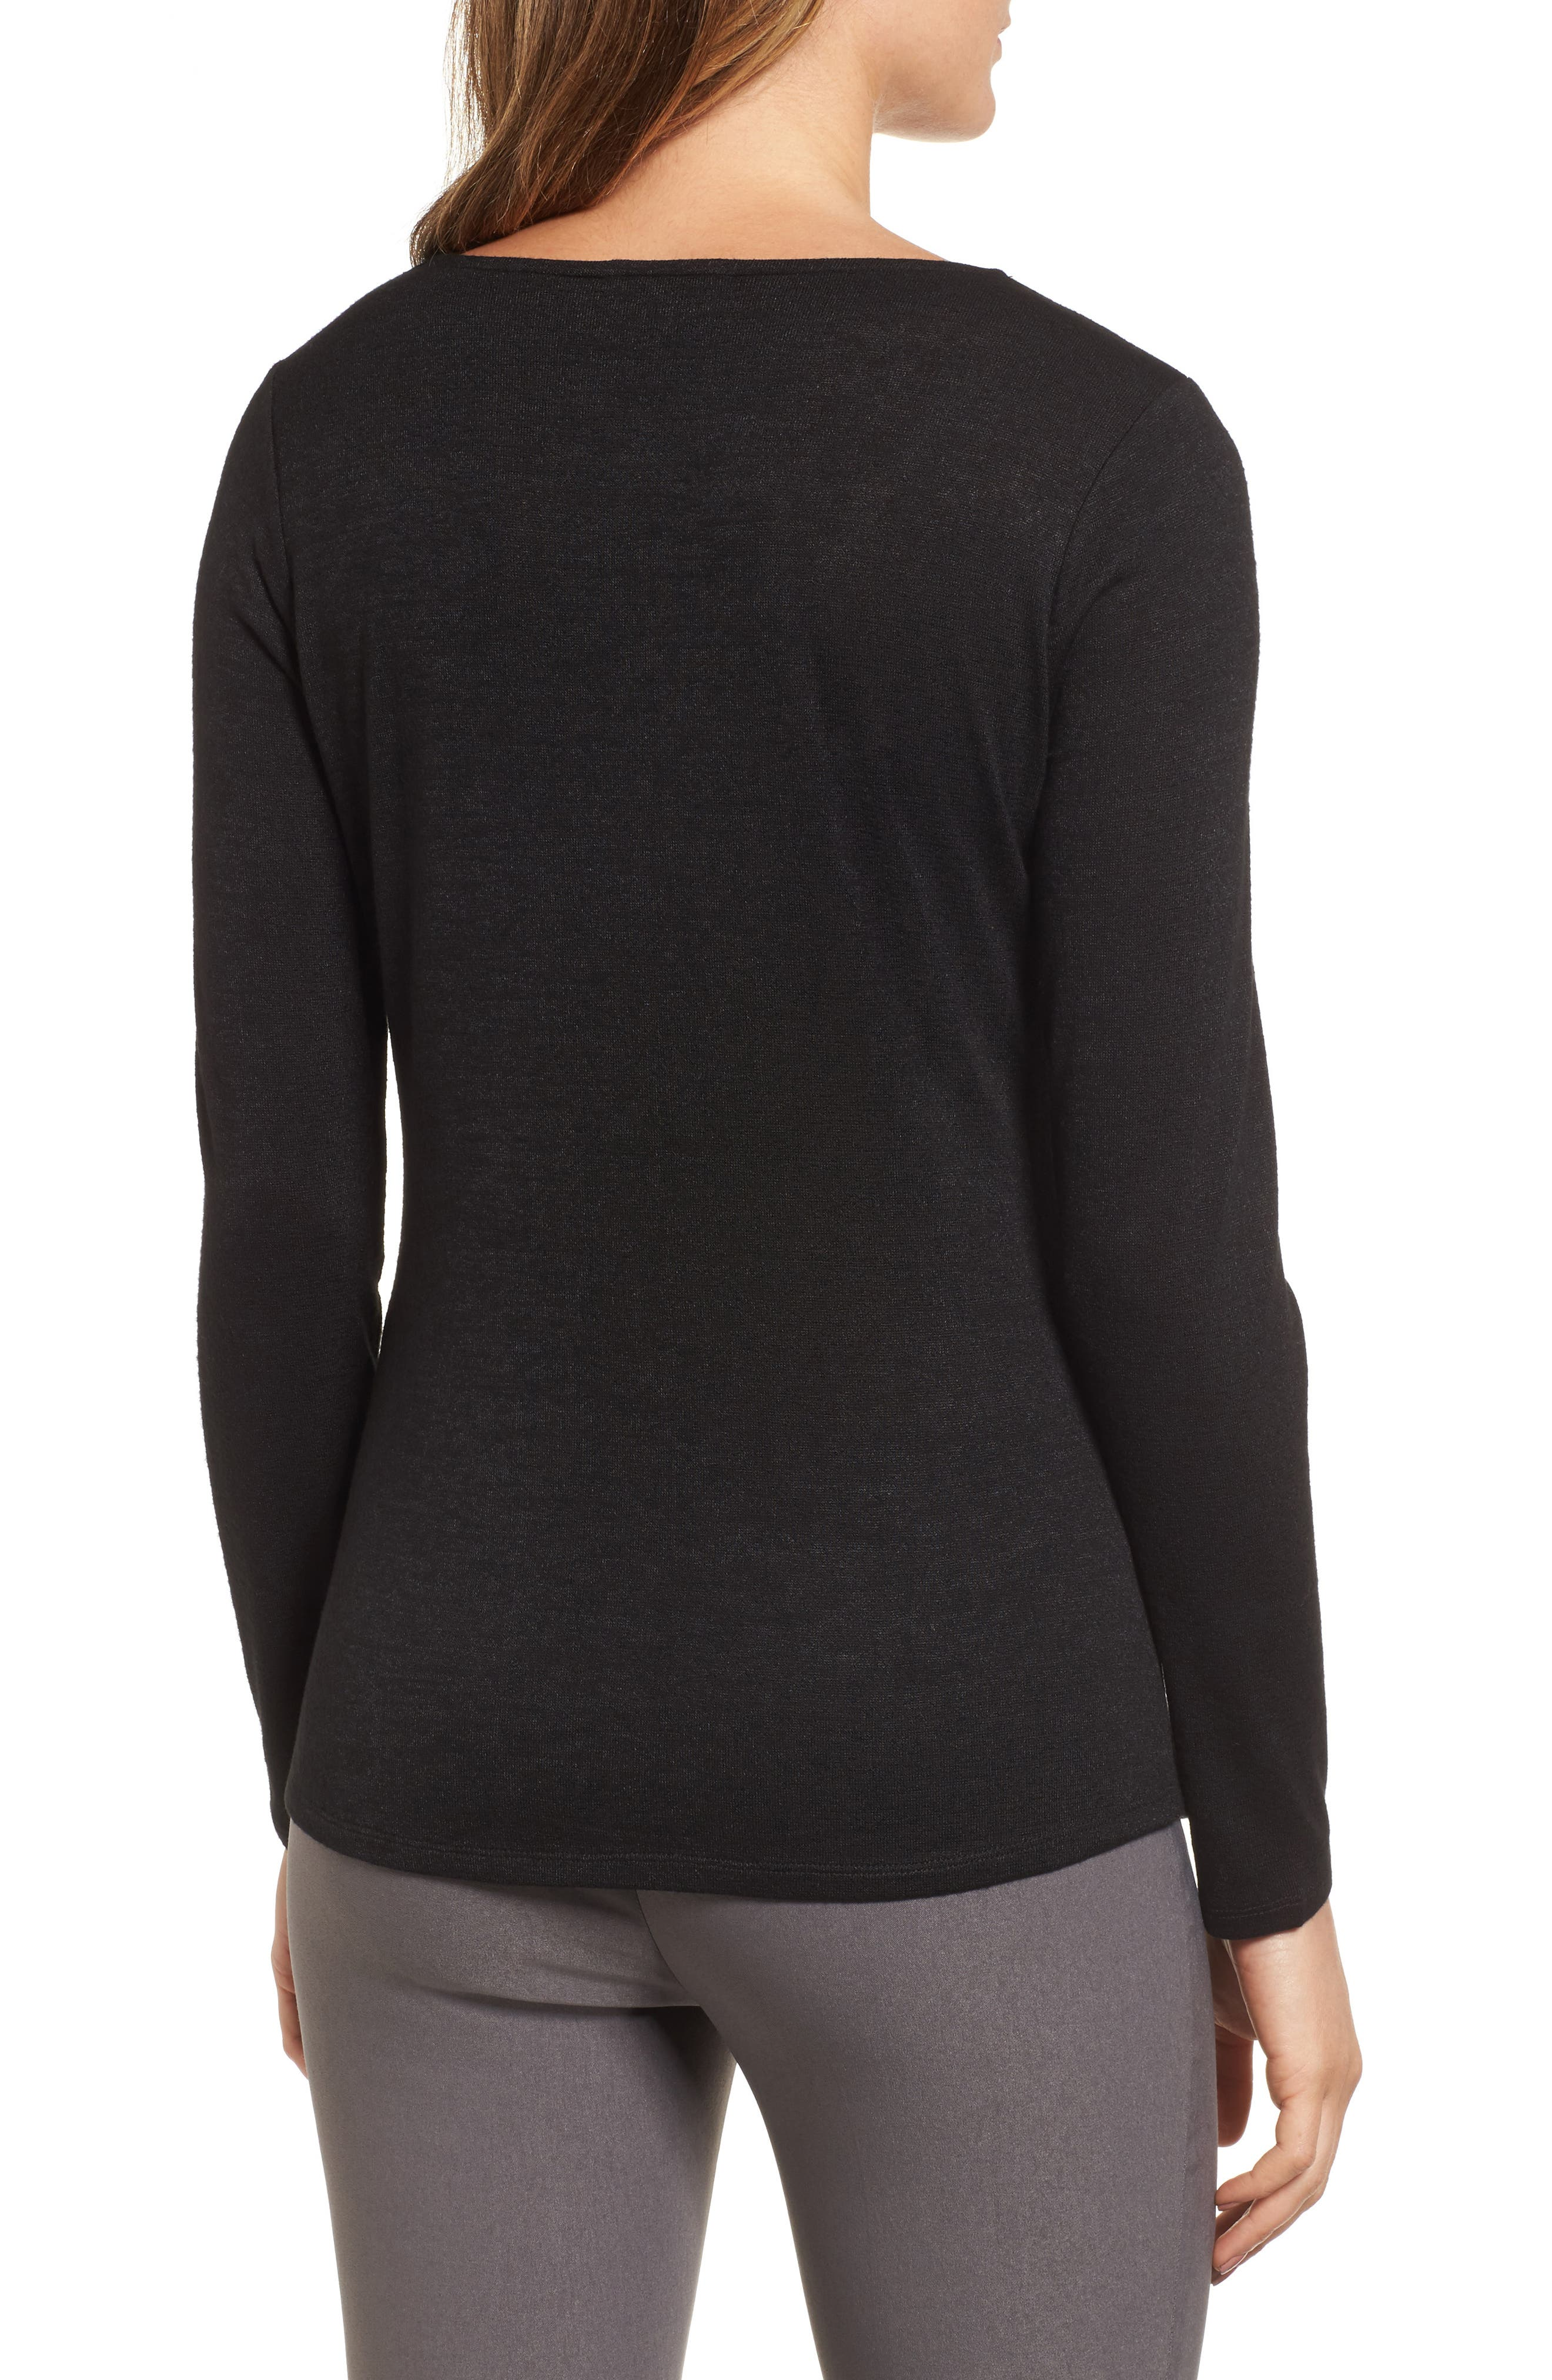 Every Occasion Drape Top,                             Alternate thumbnail 2, color,                             004